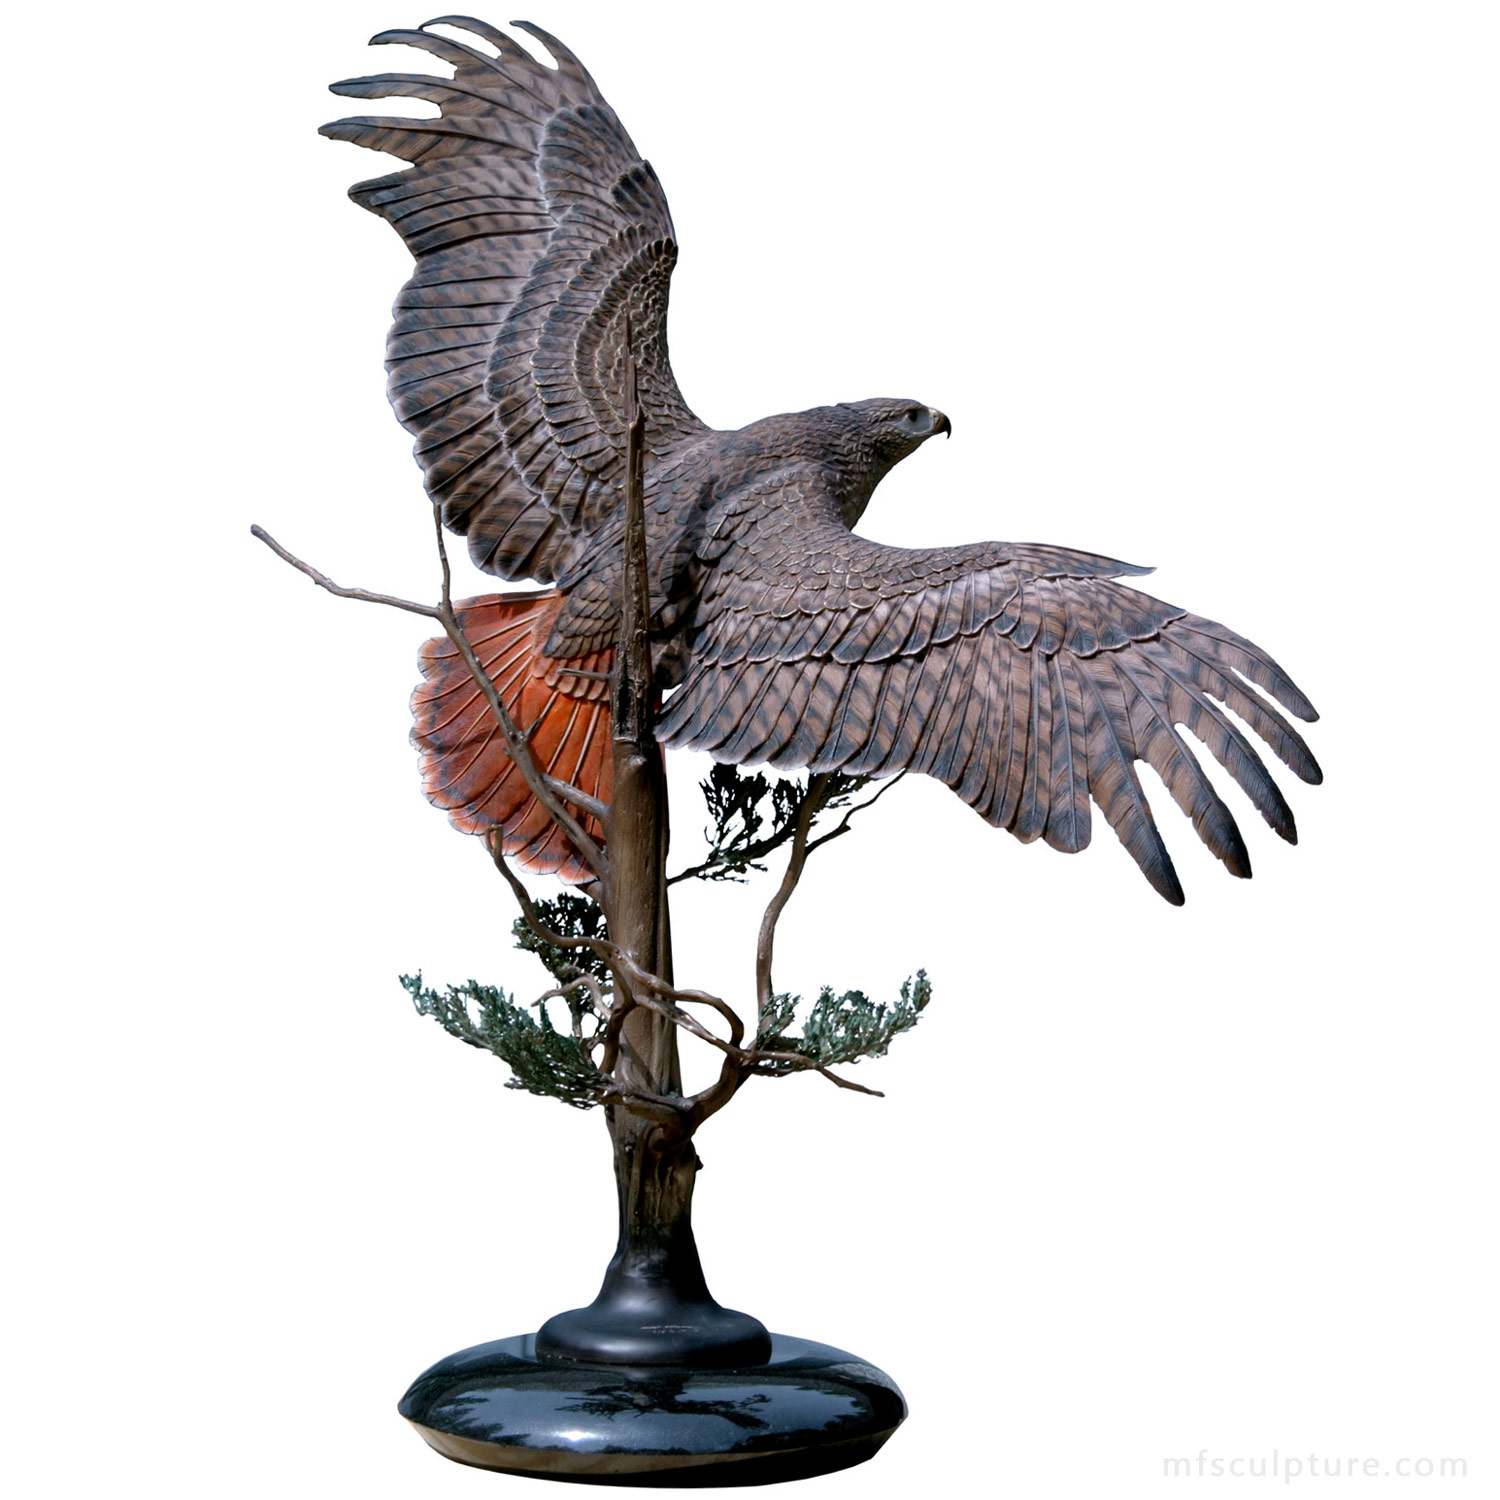 Sovereign Skies Bronze Red Tailed Hawk Sculpture Statue